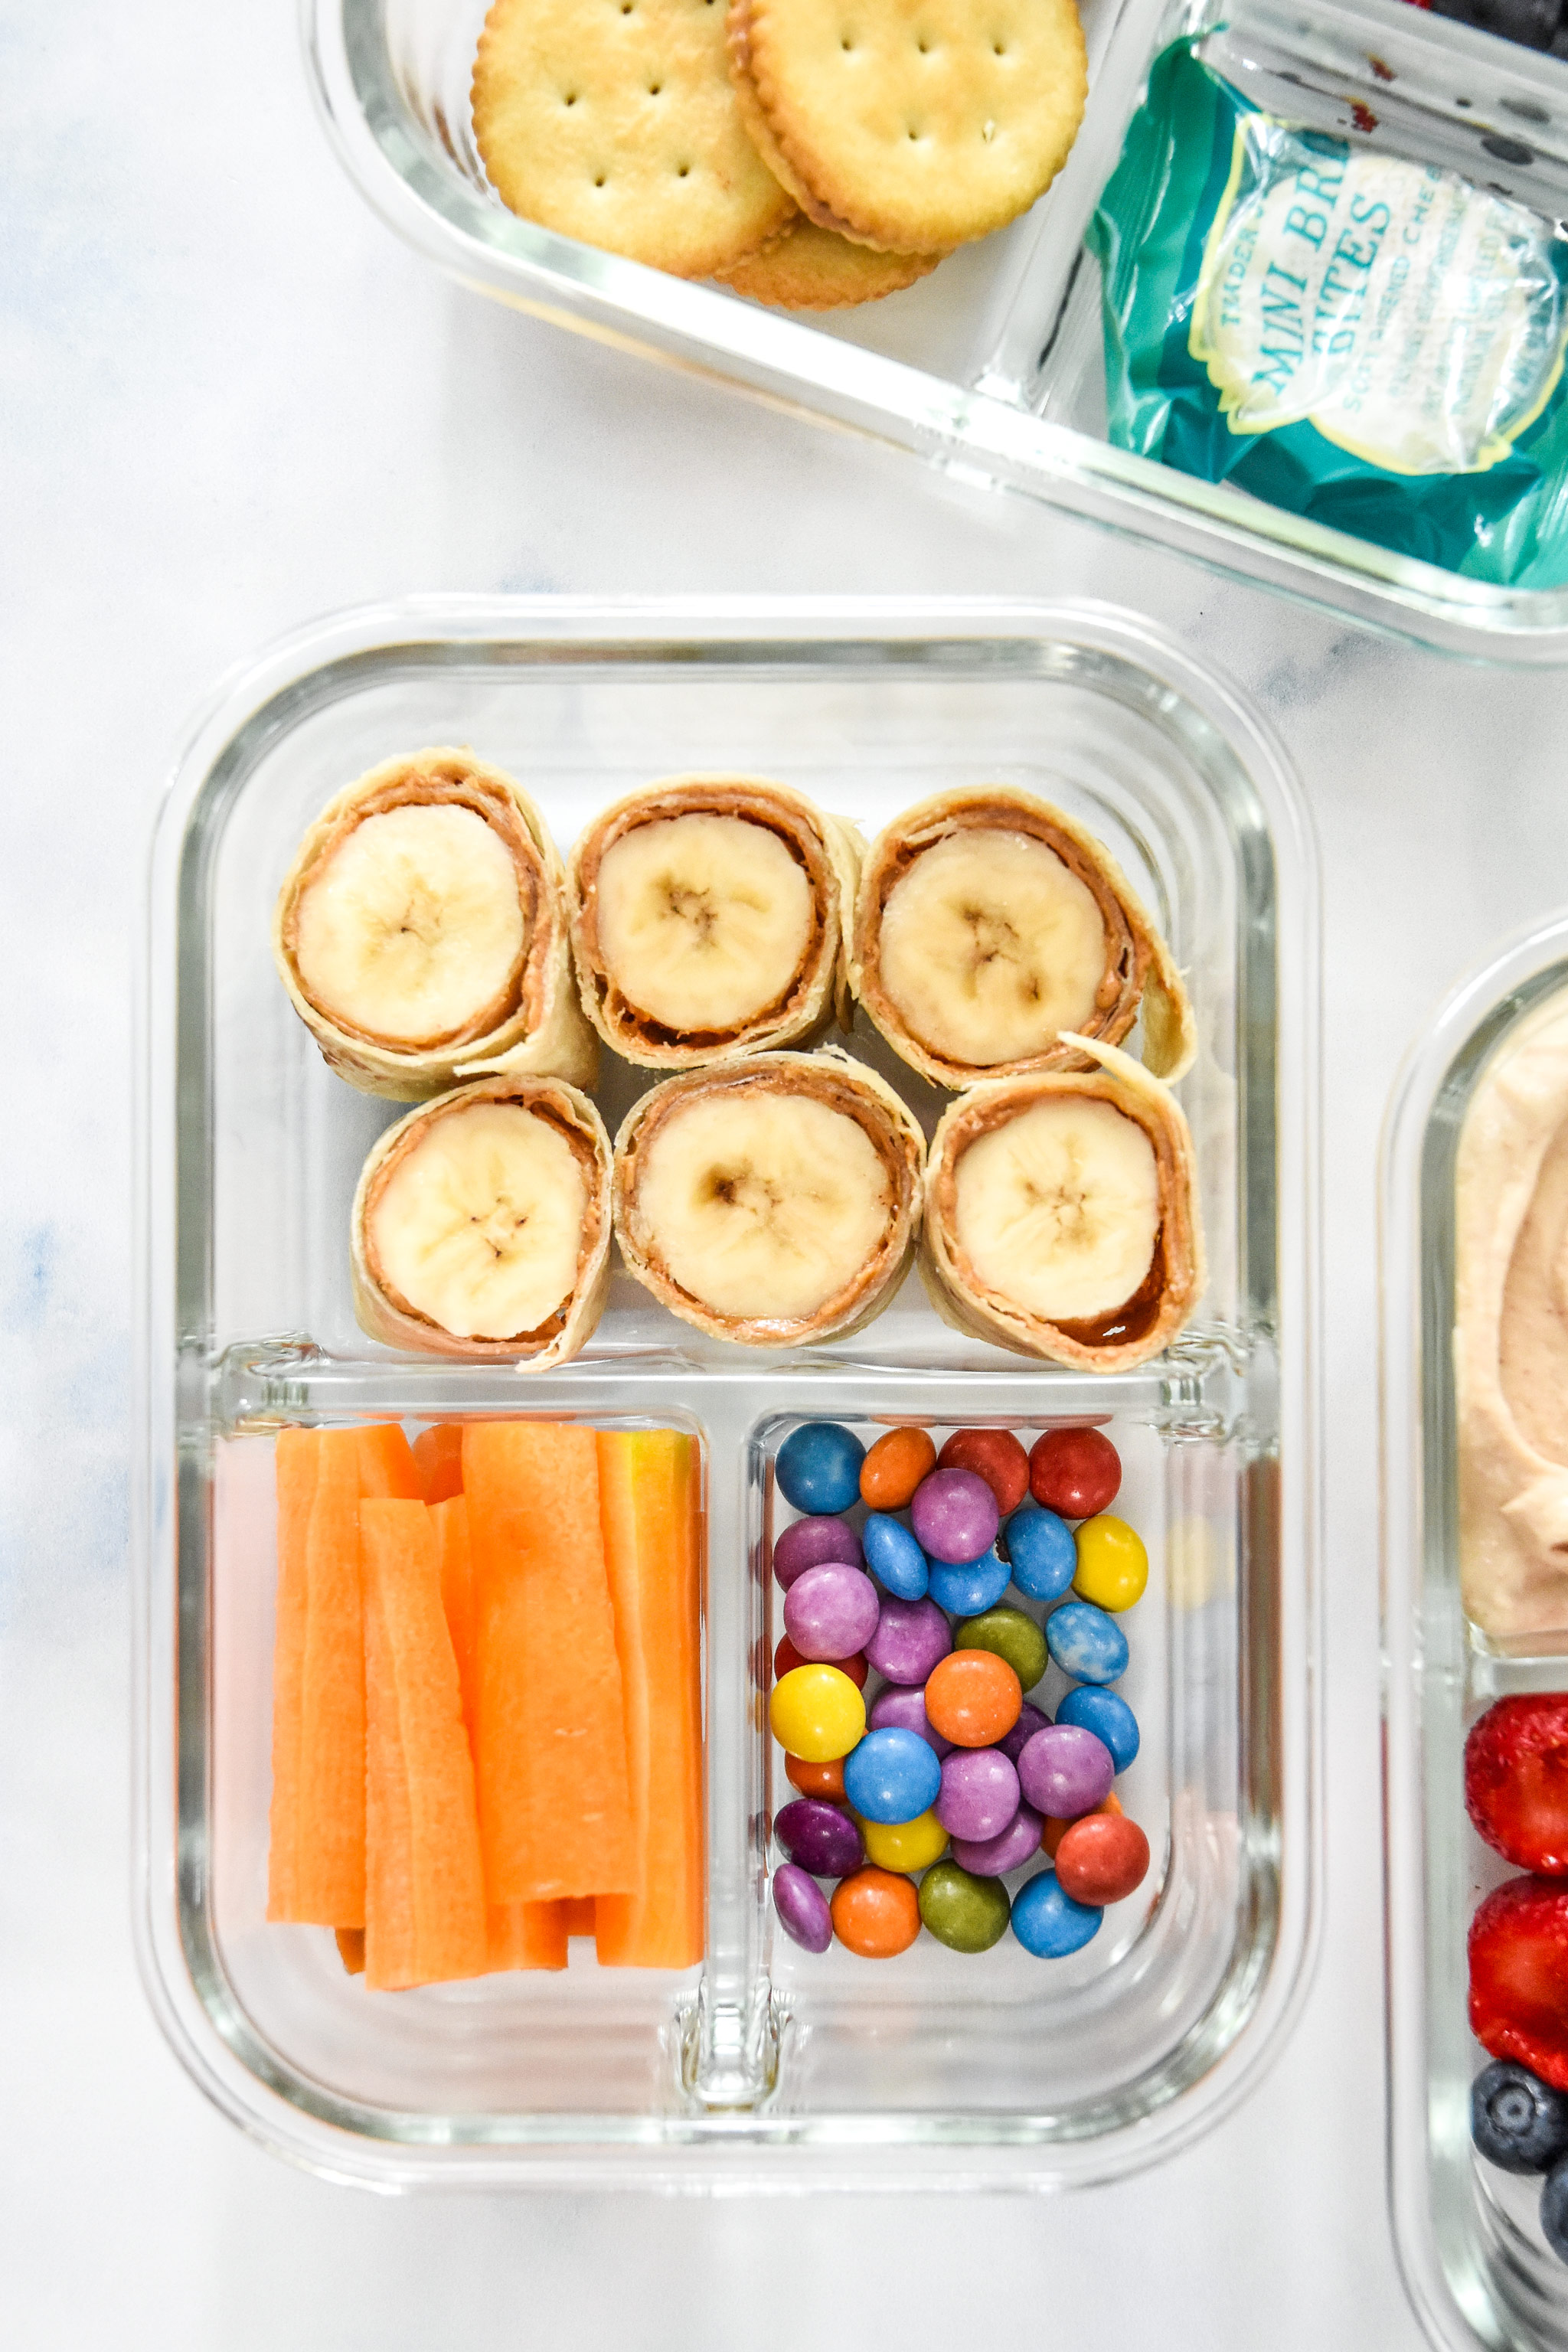 banana roll ups with carrot sticks and chocolate candies in a glass meal prep container.